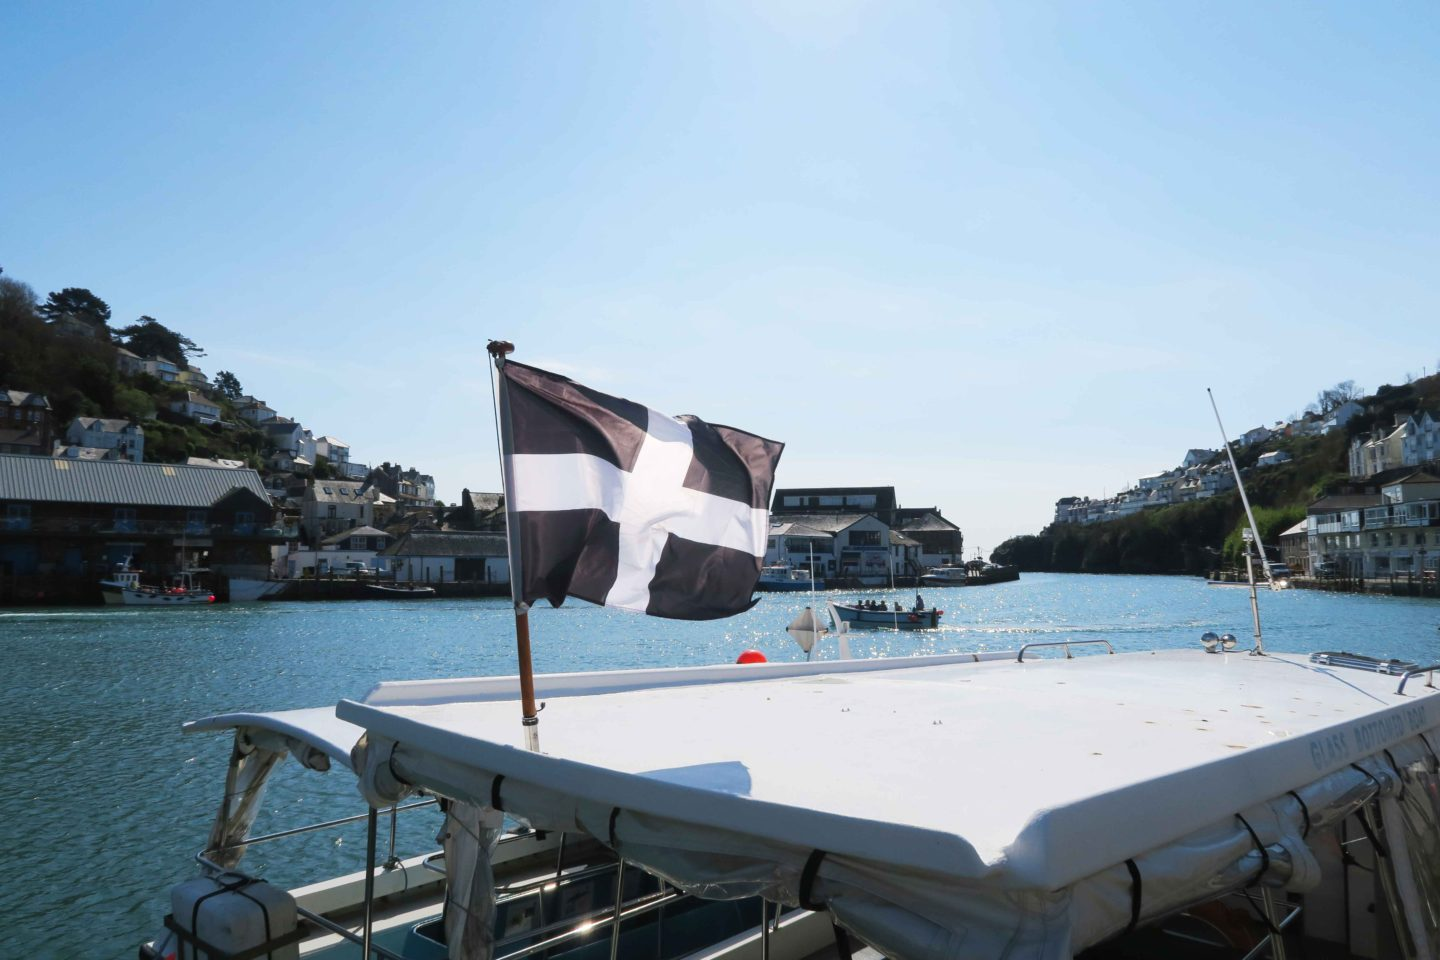 cornish flag on boat in looe river in cornwall